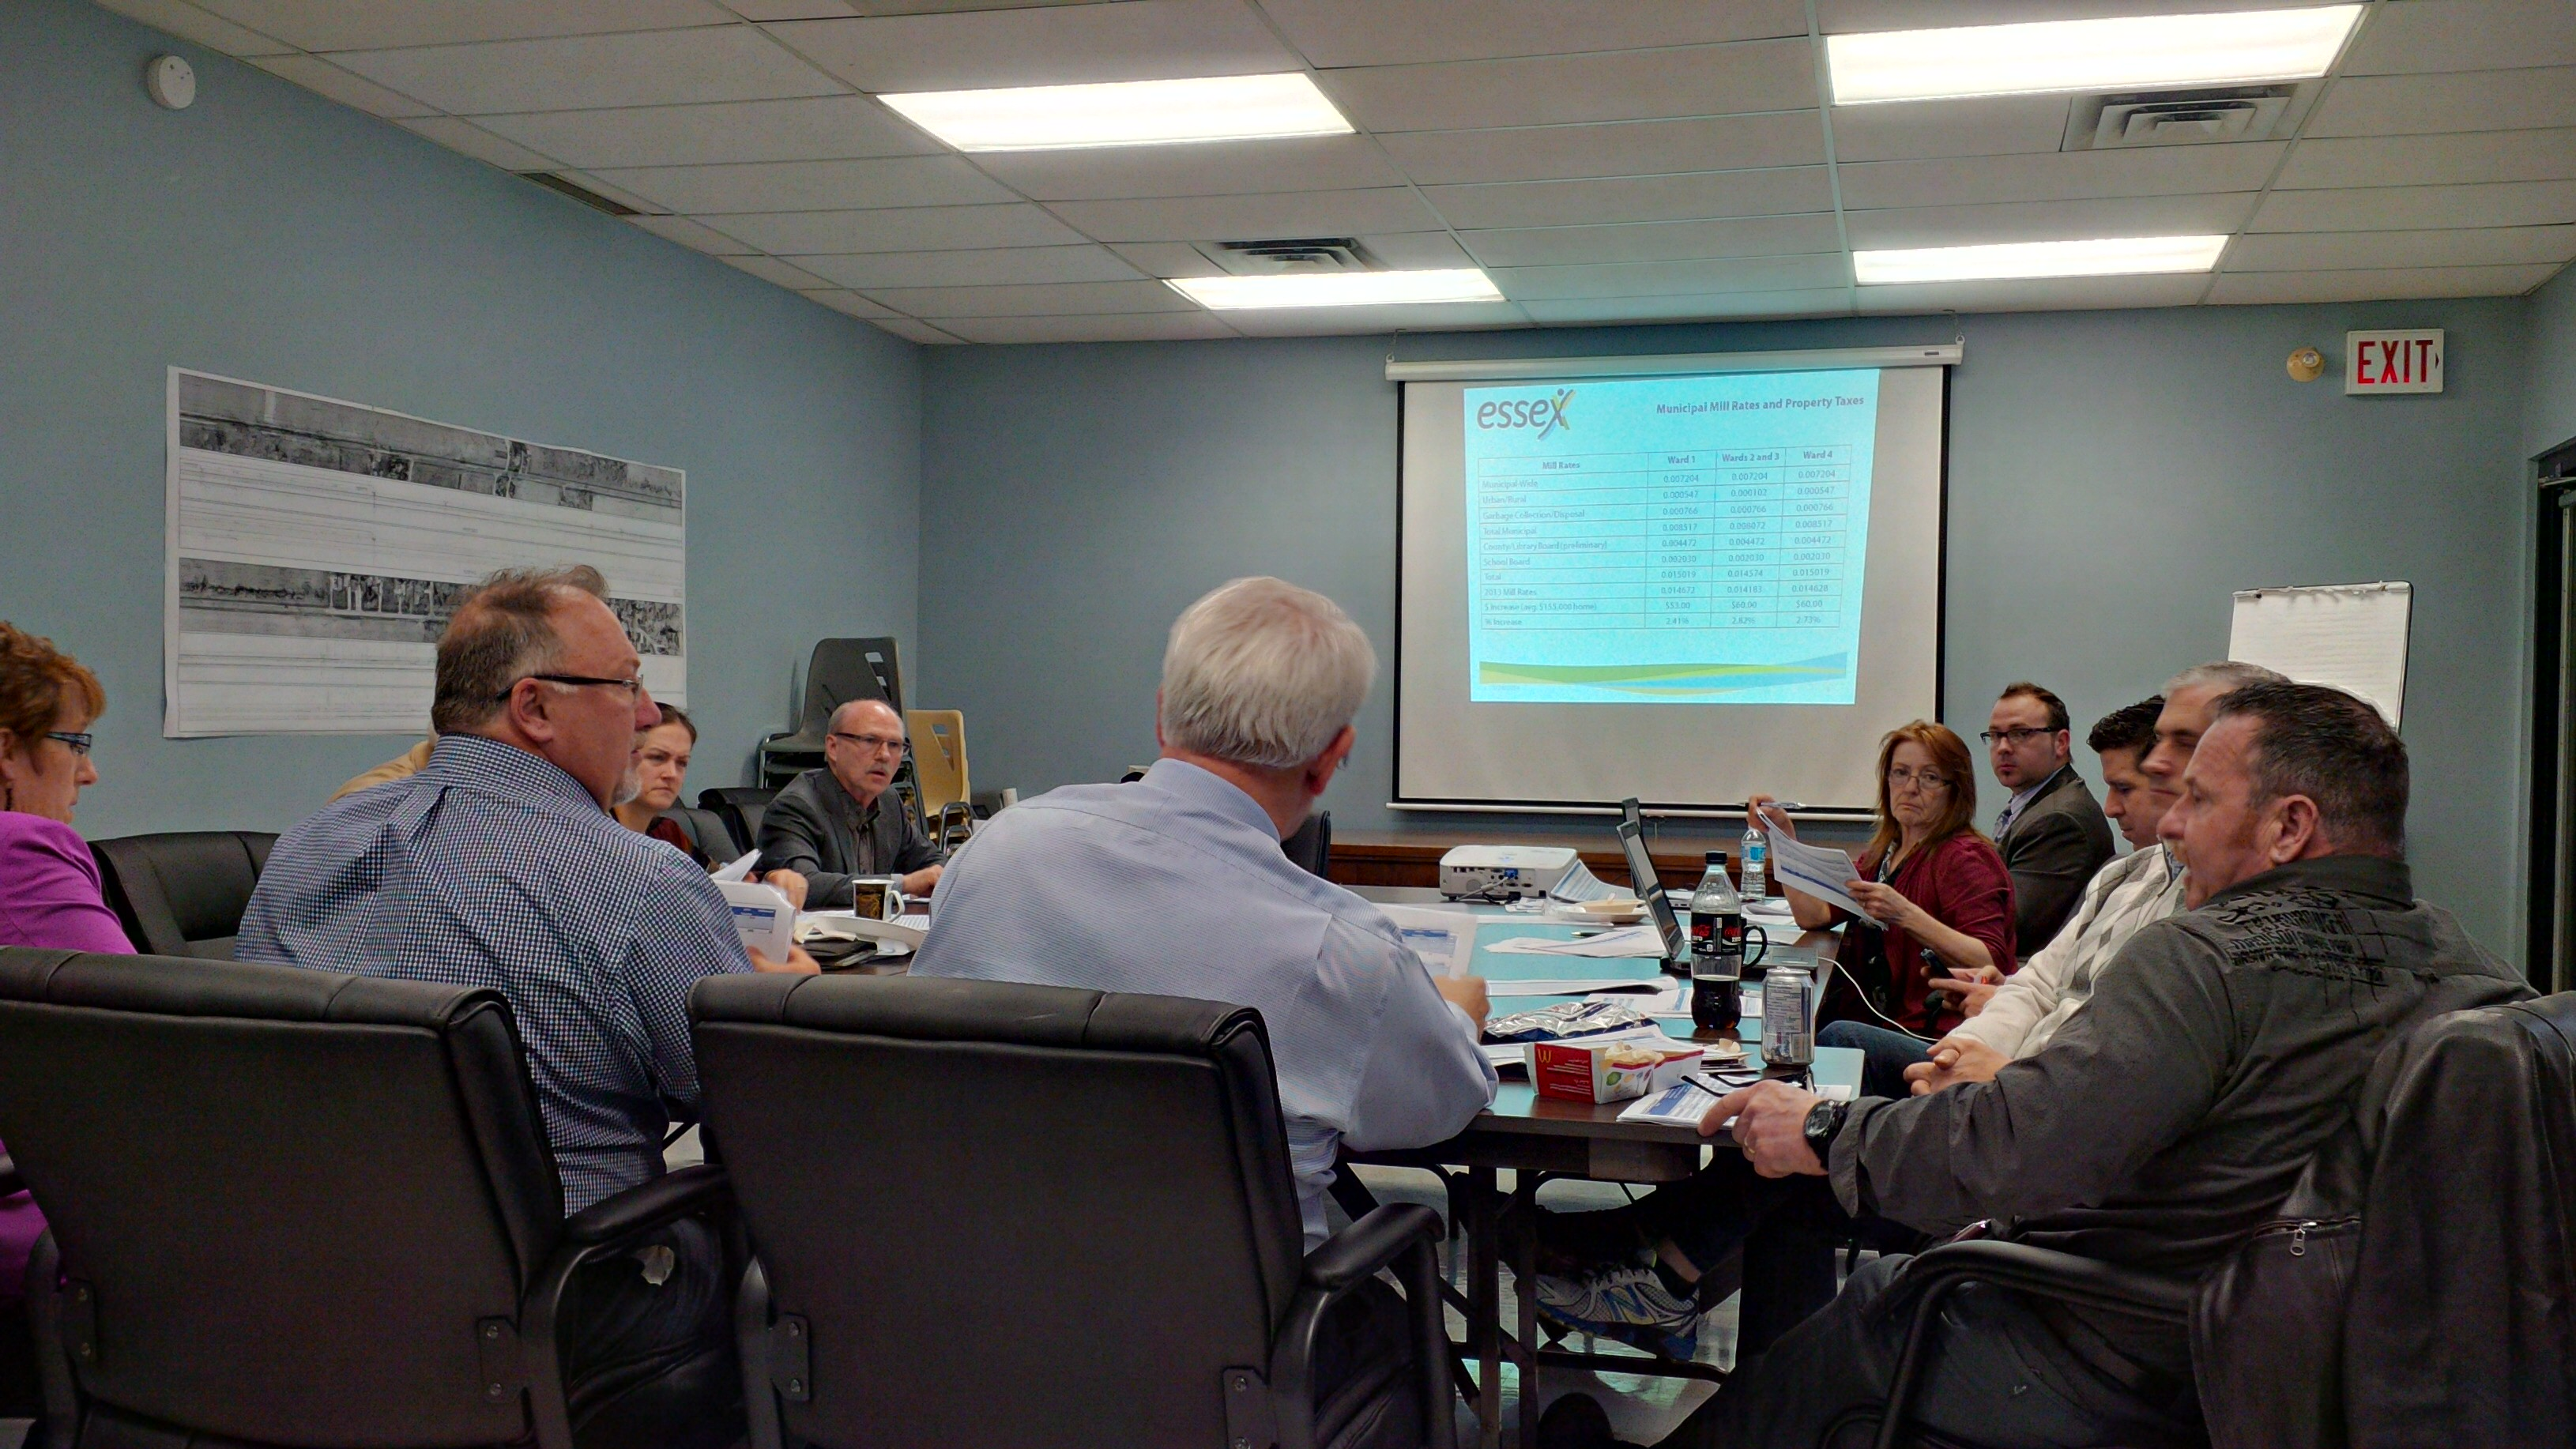 Town of Essex Council meets for budget talks, March 24, 2014. (Photo by Ricardo Veneza)